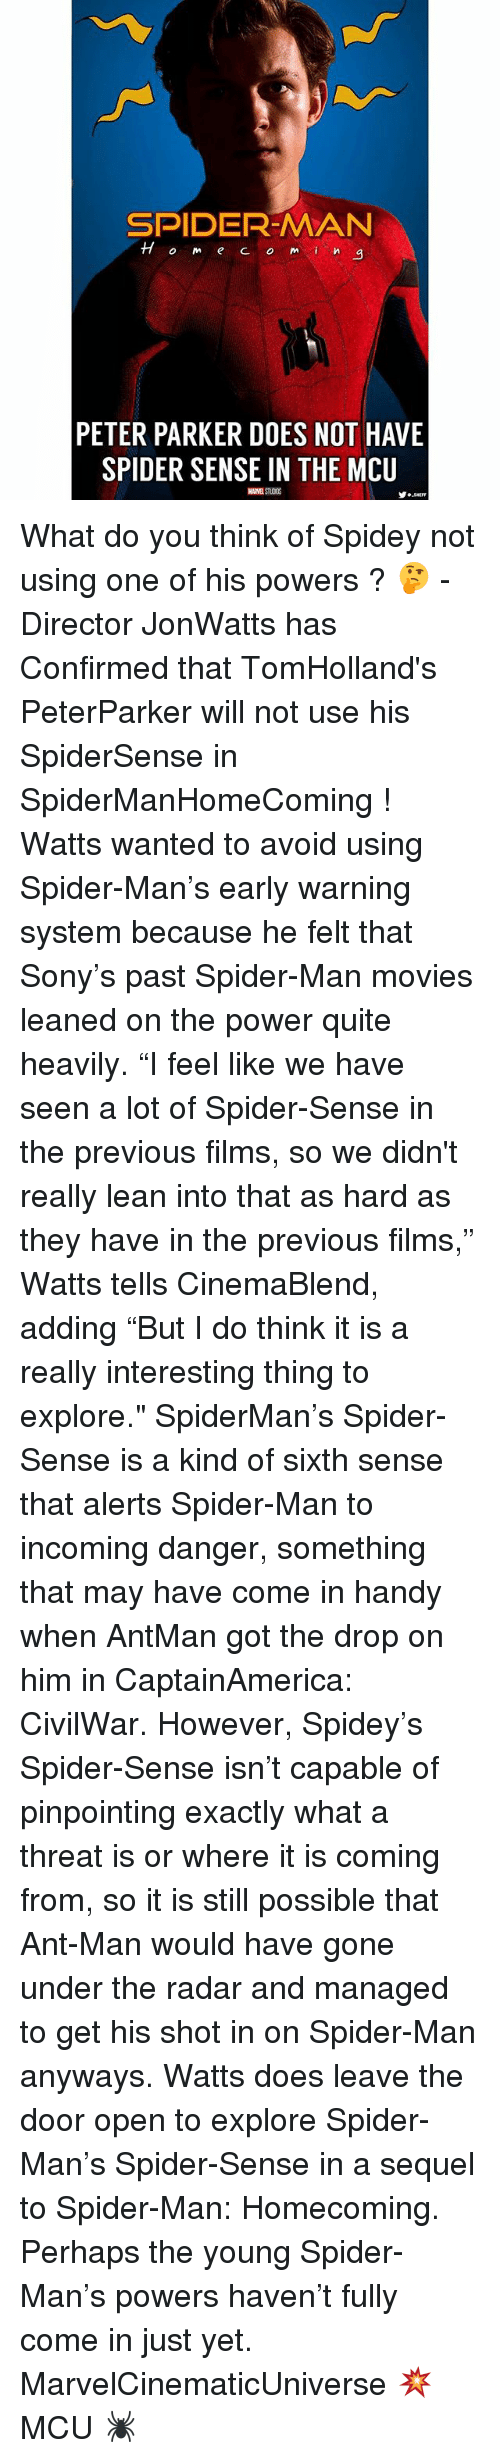 """avoidance: SPIDER-MAN  TTom e CO mi  a  PETER PARKER DOES NOT HAVE  SPIDER SENSE IN THE MCU What do you think of Spidey not using one of his powers ? 🤔 - Director JonWatts has Confirmed that TomHolland's PeterParker will not use his SpiderSense in SpiderManHomeComing ! Watts wanted to avoid using Spider-Man's early warning system because he felt that Sony's past Spider-Man movies leaned on the power quite heavily. """"I feel like we have seen a lot of Spider-Sense in the previous films, so we didn't really lean into that as hard as they have in the previous films,"""" Watts tells CinemaBlend, adding """"But I do think it is a really interesting thing to explore."""" SpiderMan's Spider-Sense is a kind of sixth sense that alerts Spider-Man to incoming danger, something that may have come in handy when AntMan got the drop on him in CaptainAmerica: CivilWar. However, Spidey's Spider-Sense isn't capable of pinpointing exactly what a threat is or where it is coming from, so it is still possible that Ant-Man would have gone under the radar and managed to get his shot in on Spider-Man anyways. Watts does leave the door open to explore Spider-Man's Spider-Sense in a sequel to Spider-Man: Homecoming. Perhaps the young Spider-Man's powers haven't fully come in just yet. MarvelCinematicUniverse 💥 MCU 🕷"""